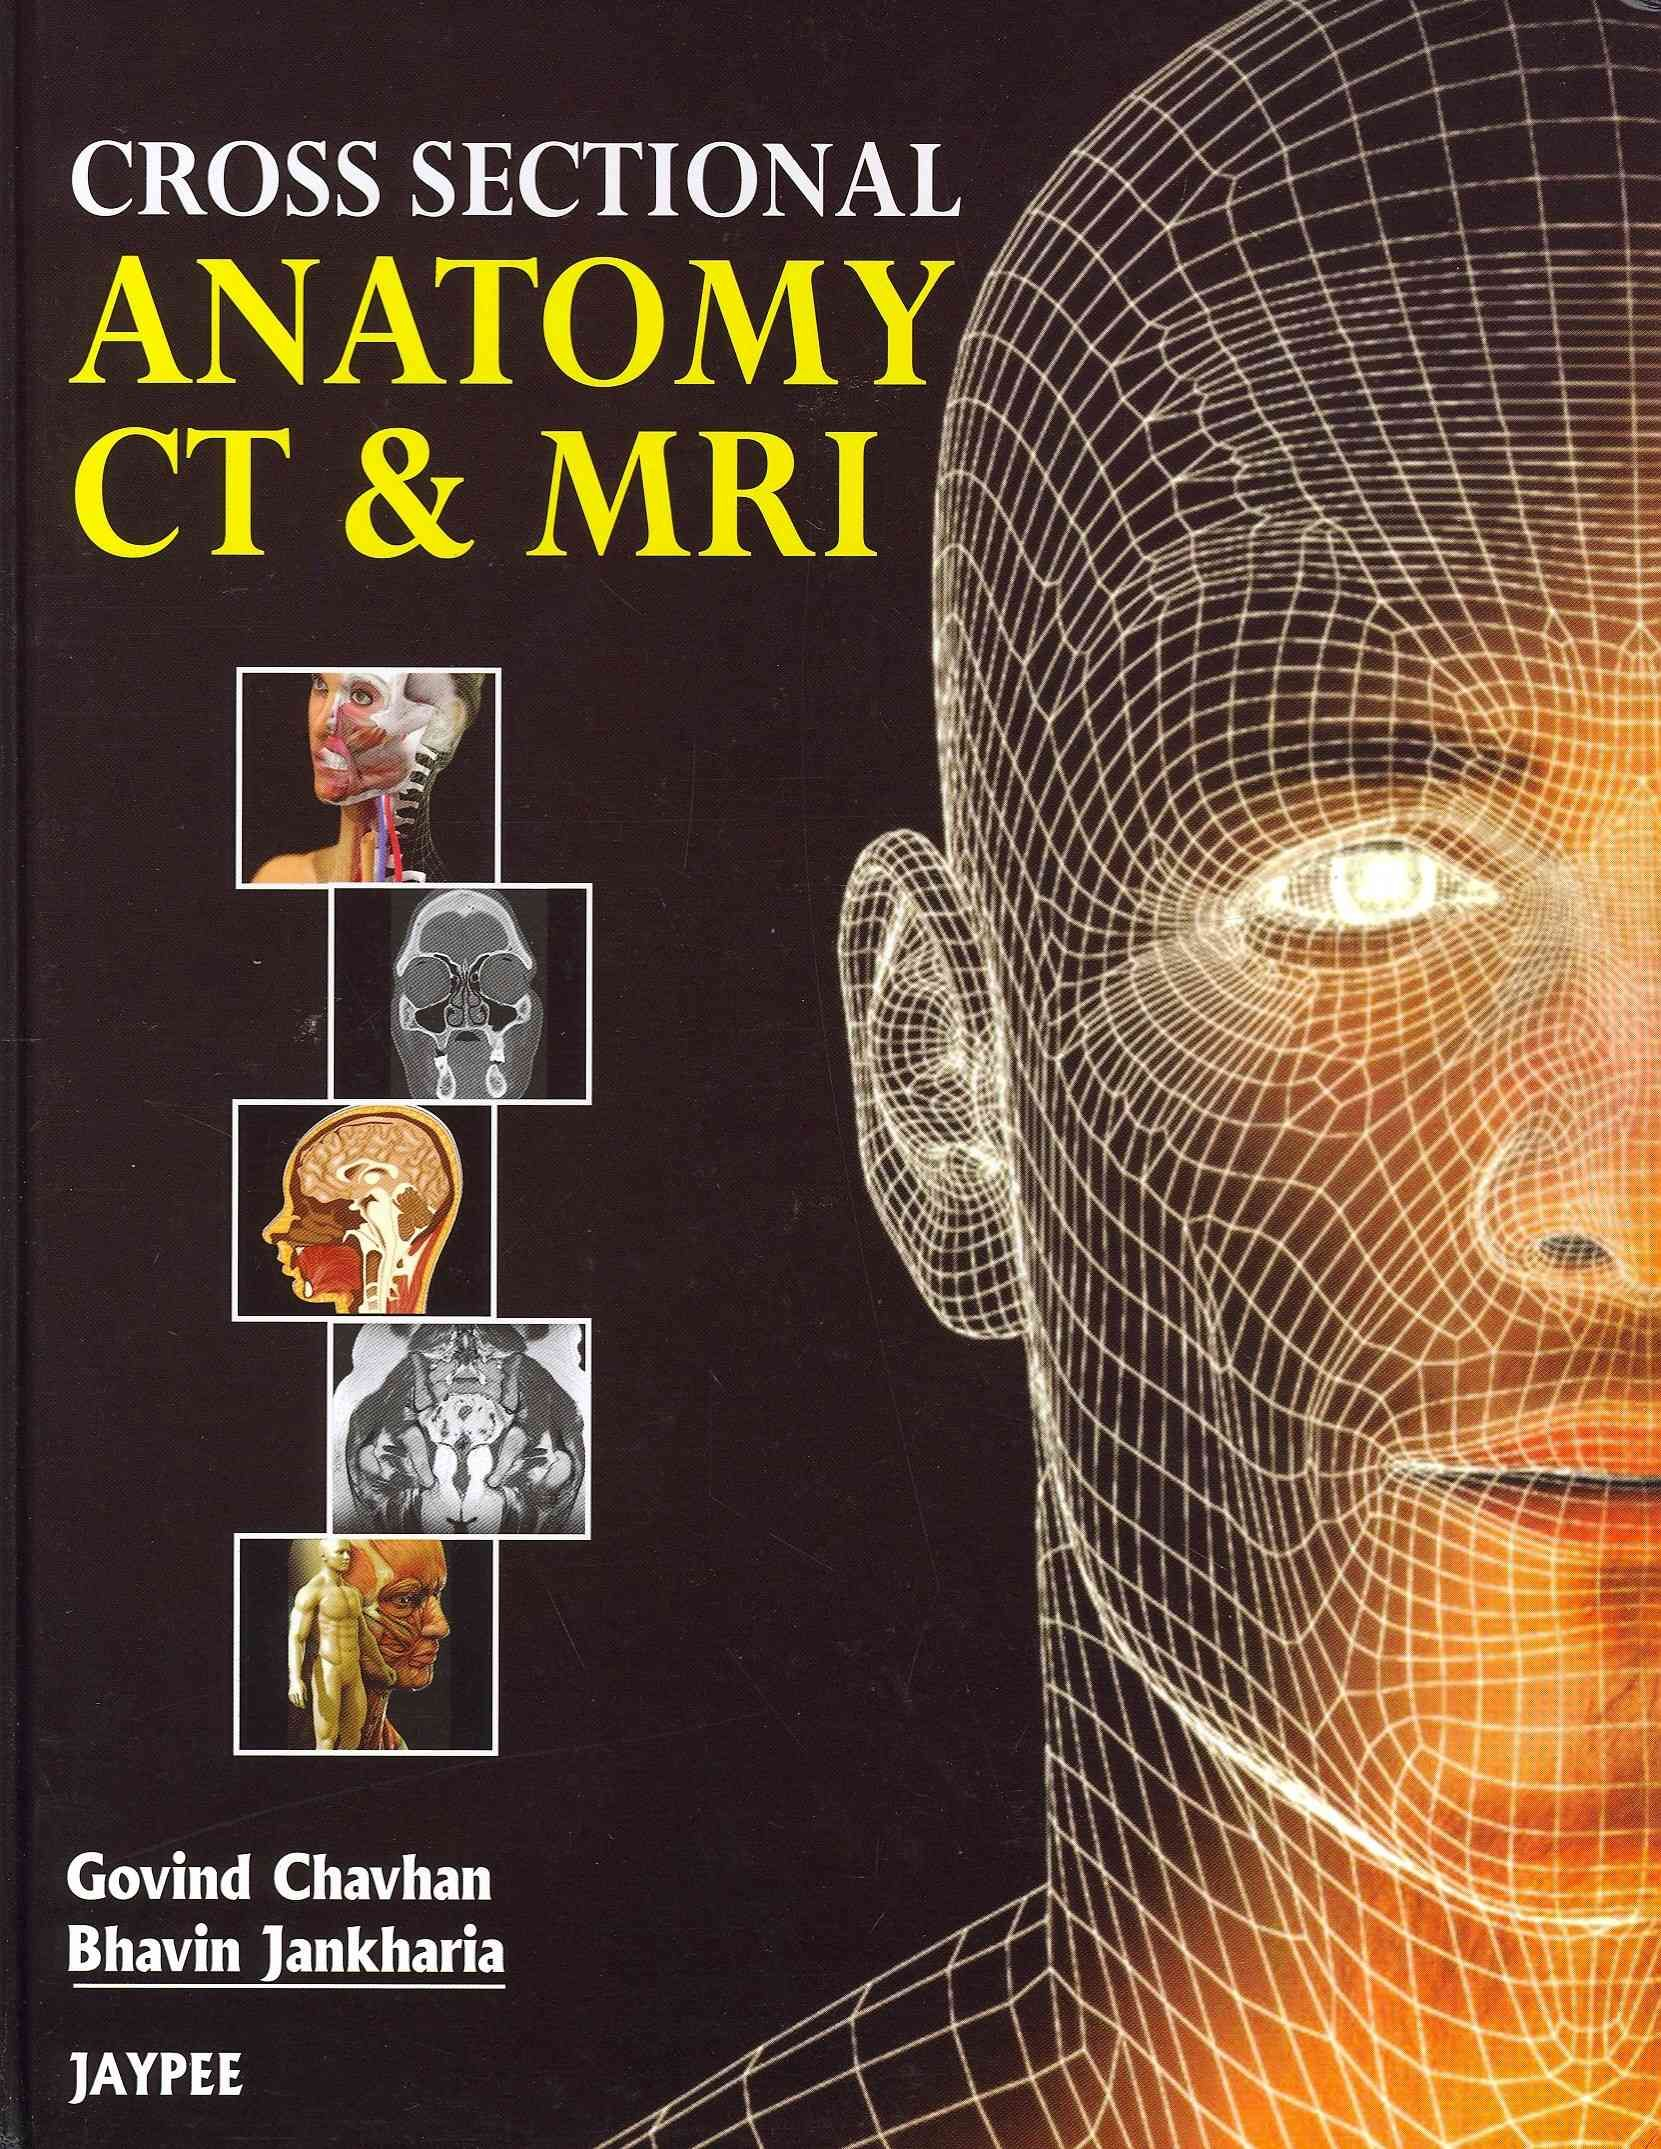 Cross Sectional Anatomy CT & MRI | Products | Pinterest | Online ...